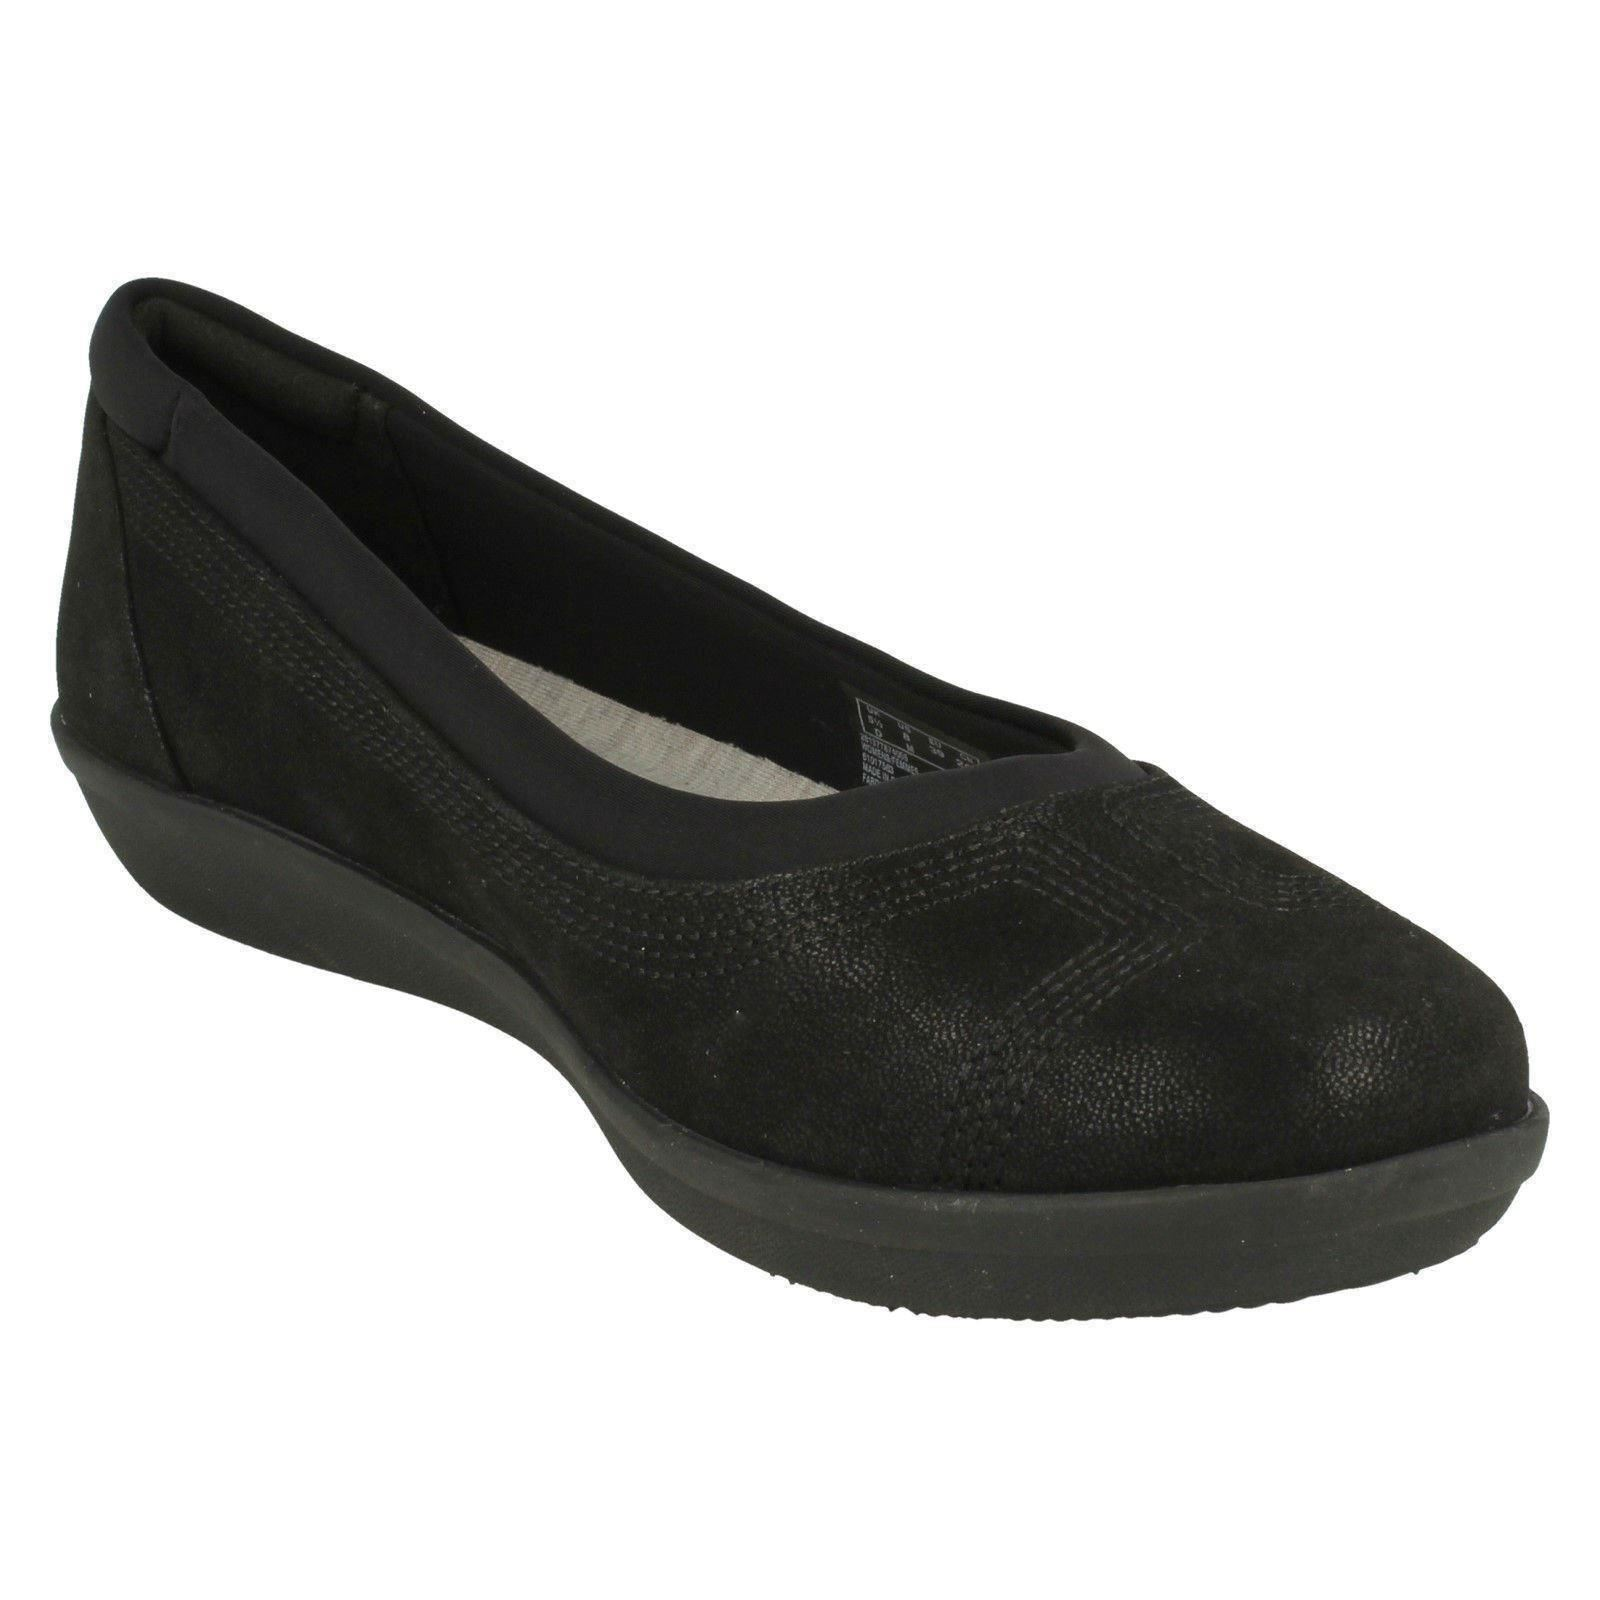 5b9ab7ea Details about Ladies Clarks Cloud Steppers Flat Shoes 'Ayla Low'